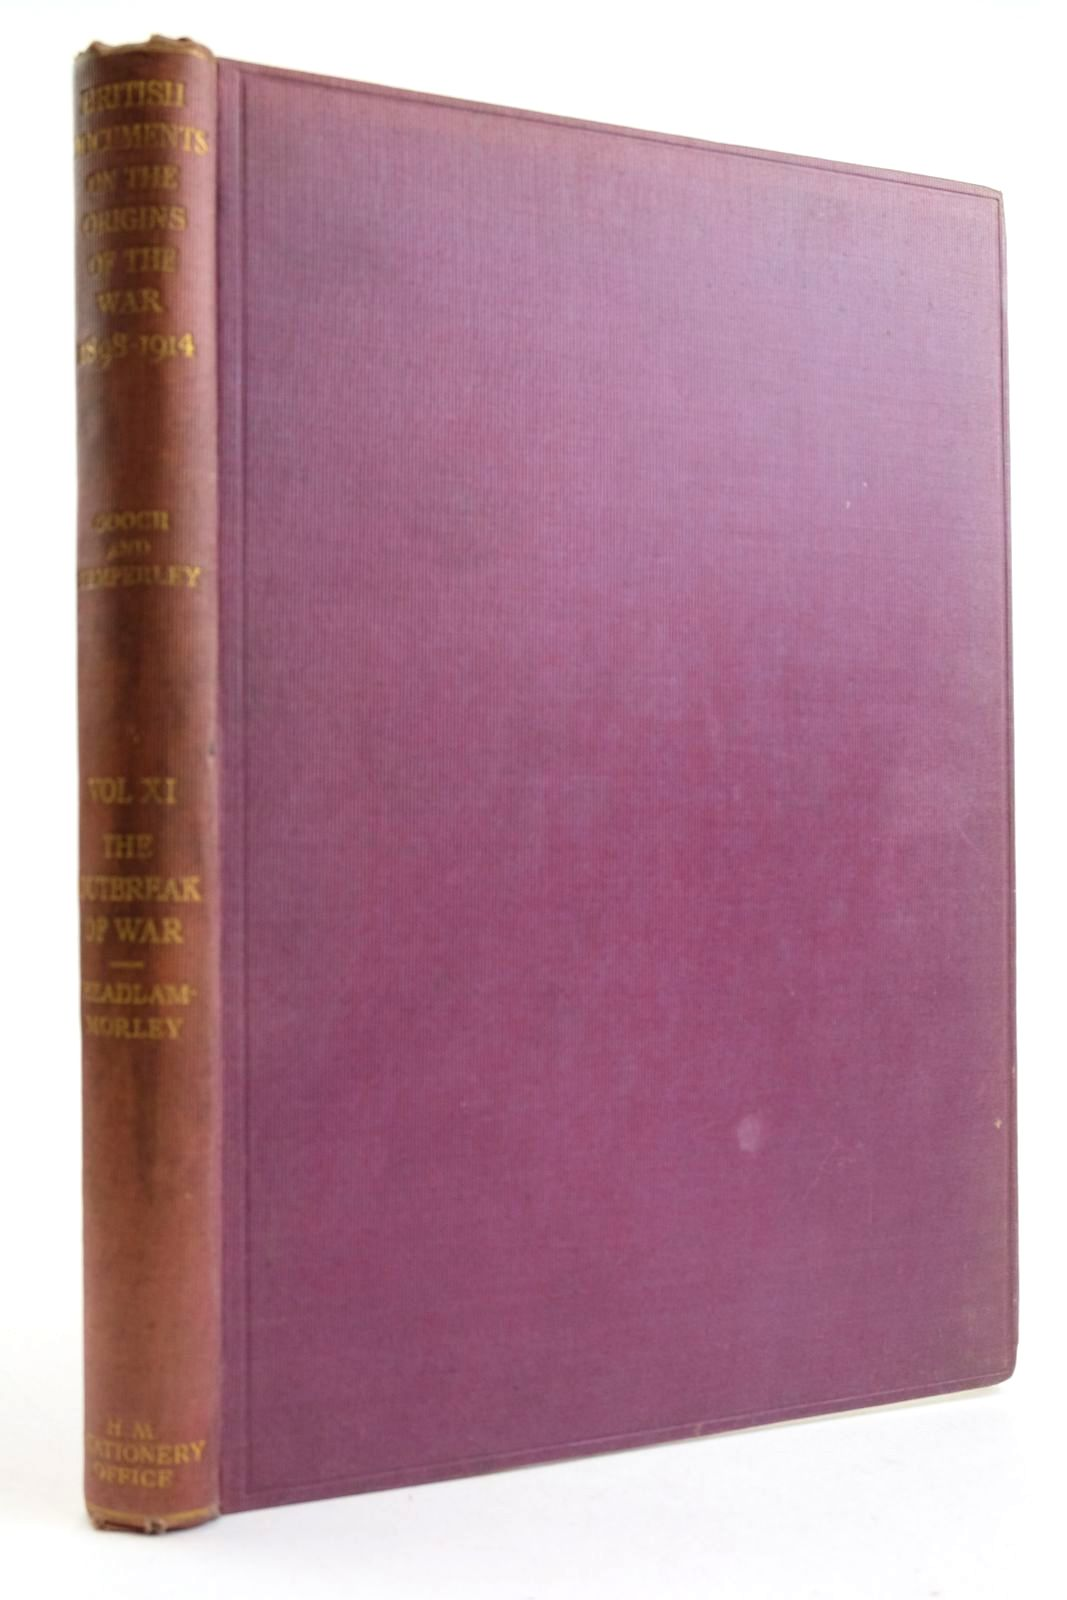 Photo of BRITISH DOCUMENTS ON THE ORIGINS OF WAR 1898-1914 VOL. XI written by Gooch, G.P. Temperley, Harold published by His Majesty's Stationery Office (STOCK CODE: 2133253)  for sale by Stella & Rose's Books